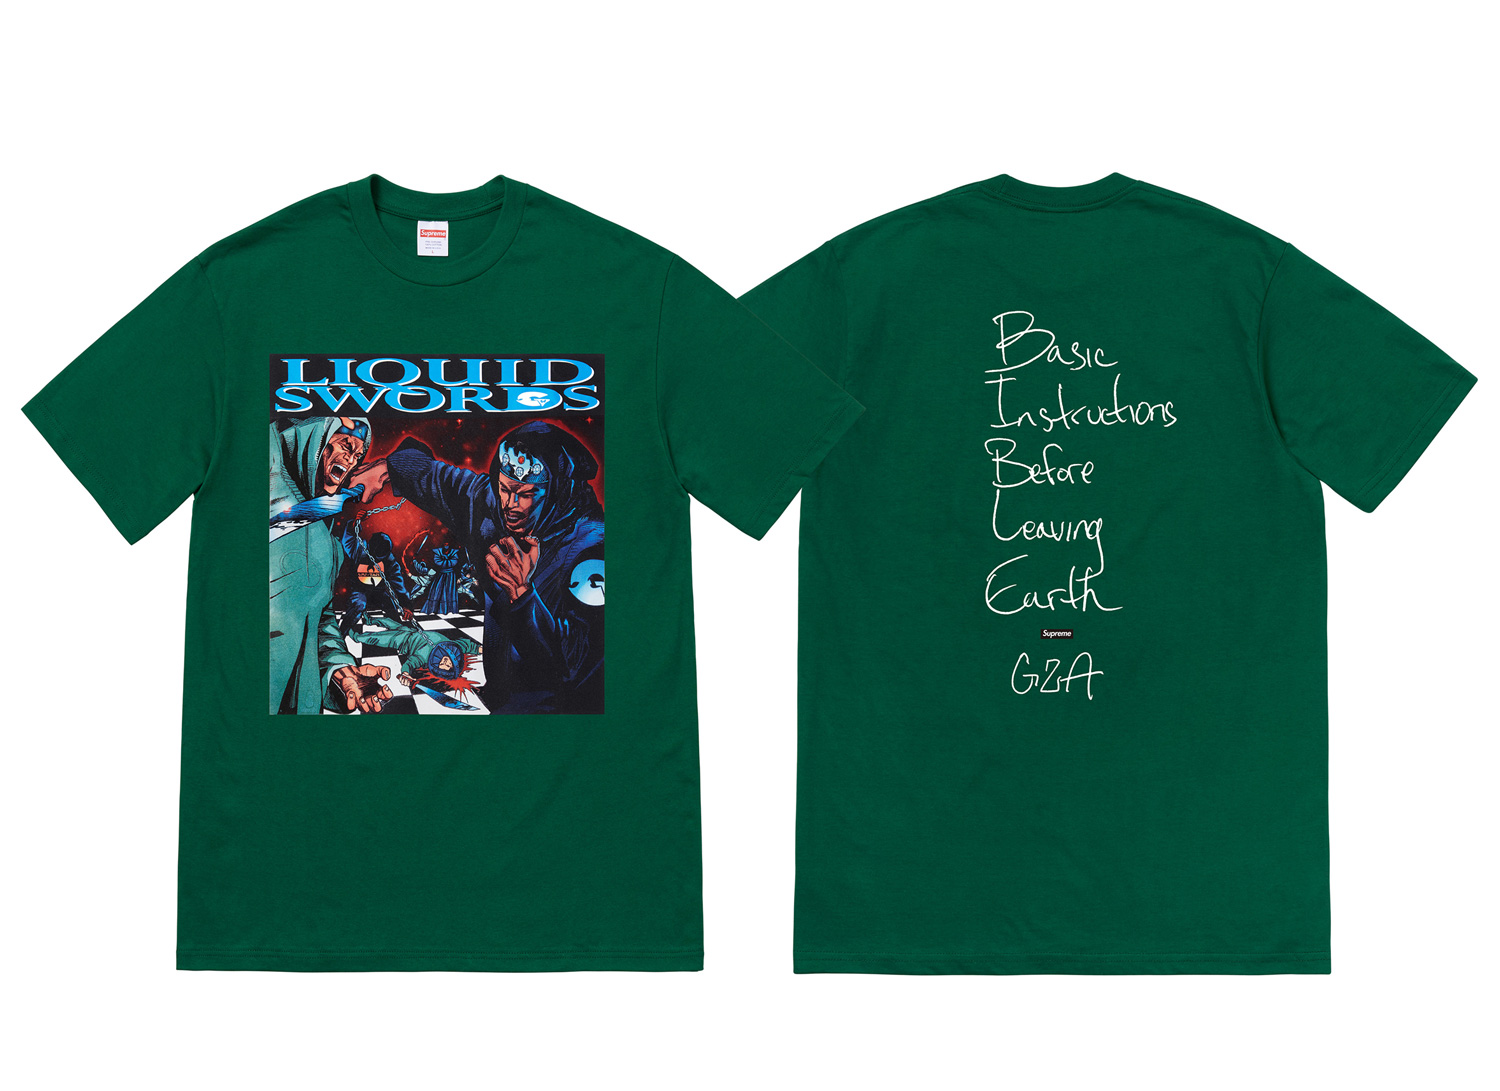 Liquid Swords Tee